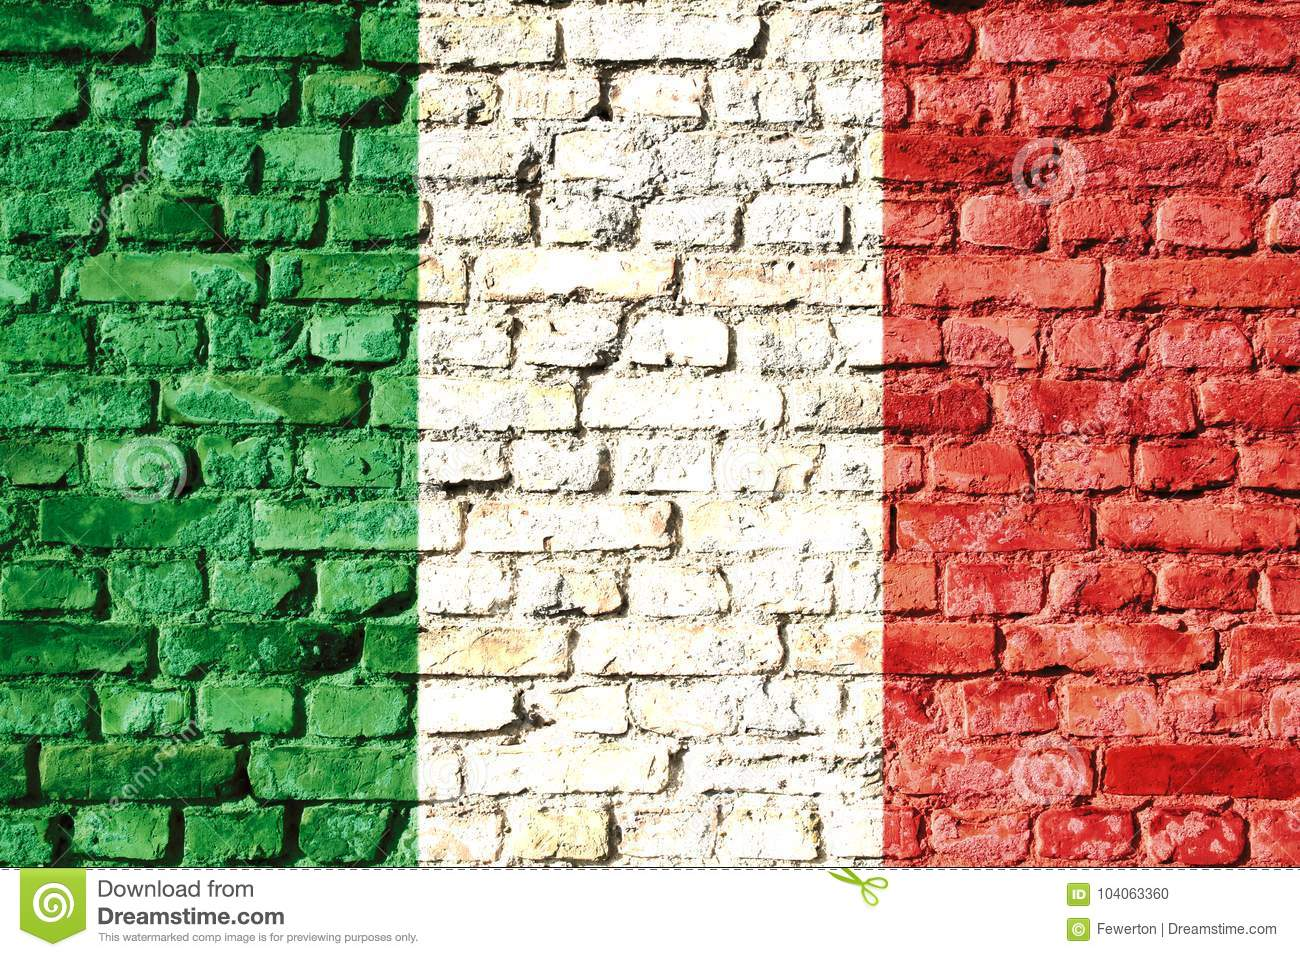 Italy national flag painted on a brick wall with the traditional green, white and red colors.